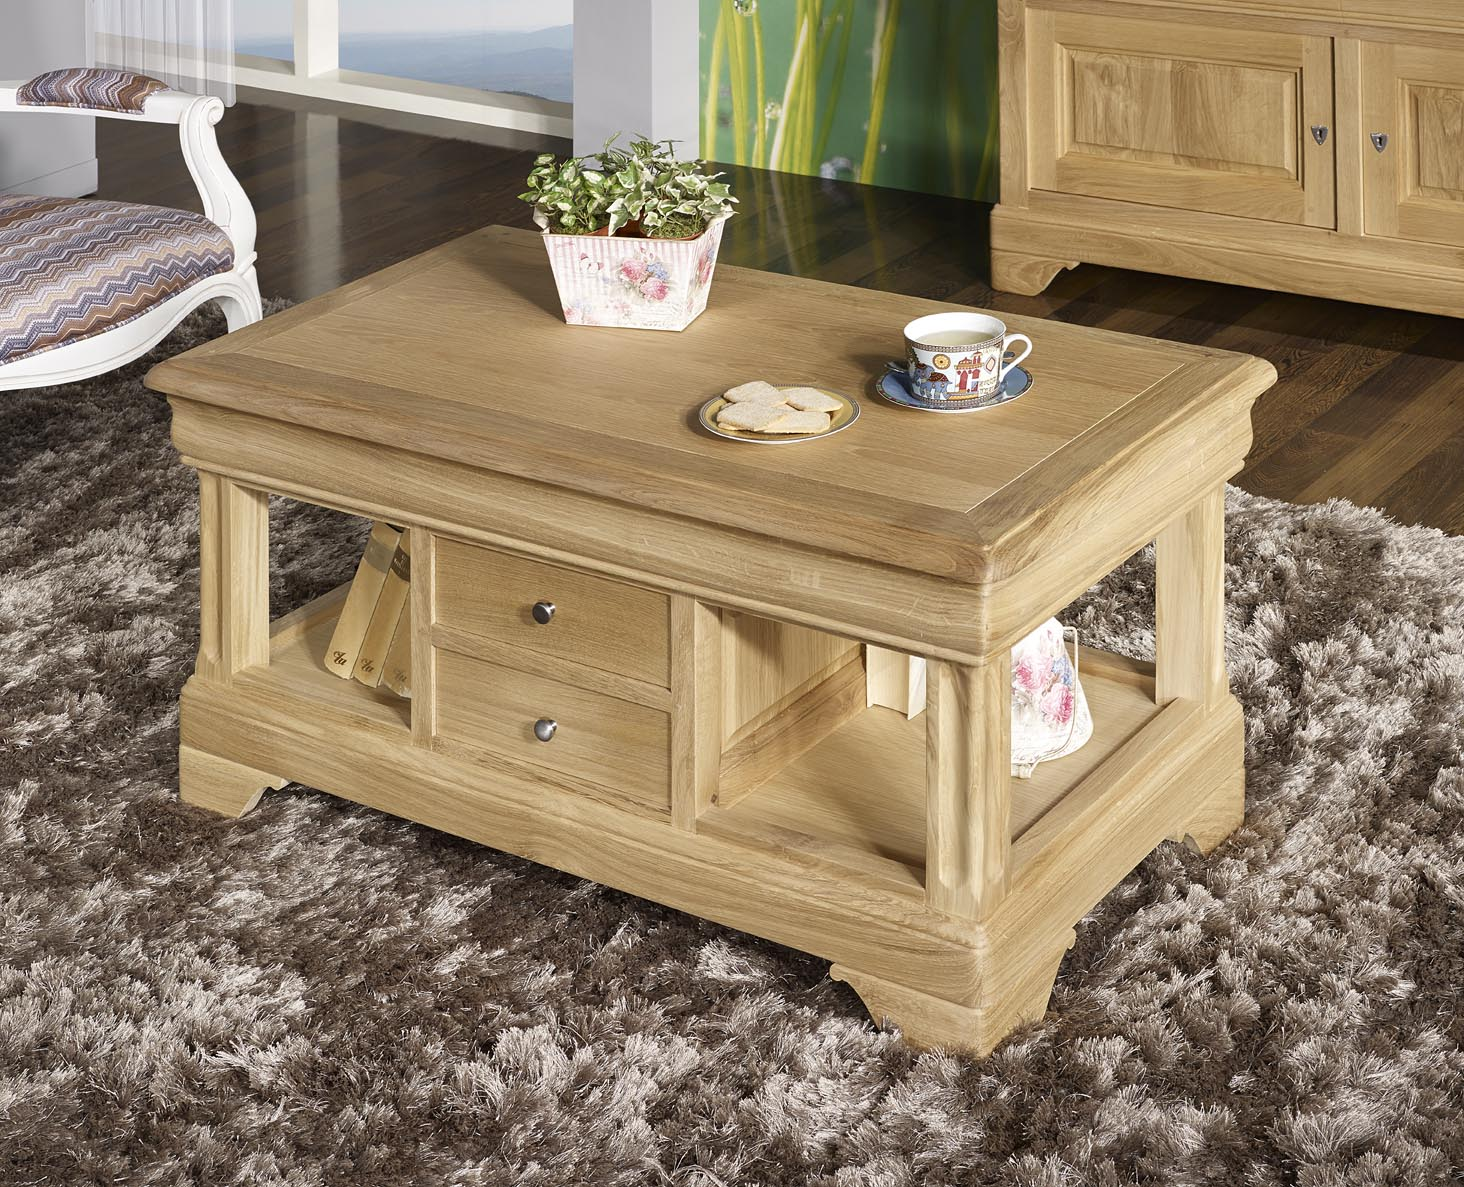 Table Basse en Chªne de style Louis Philippe Finition Chªne Brossé